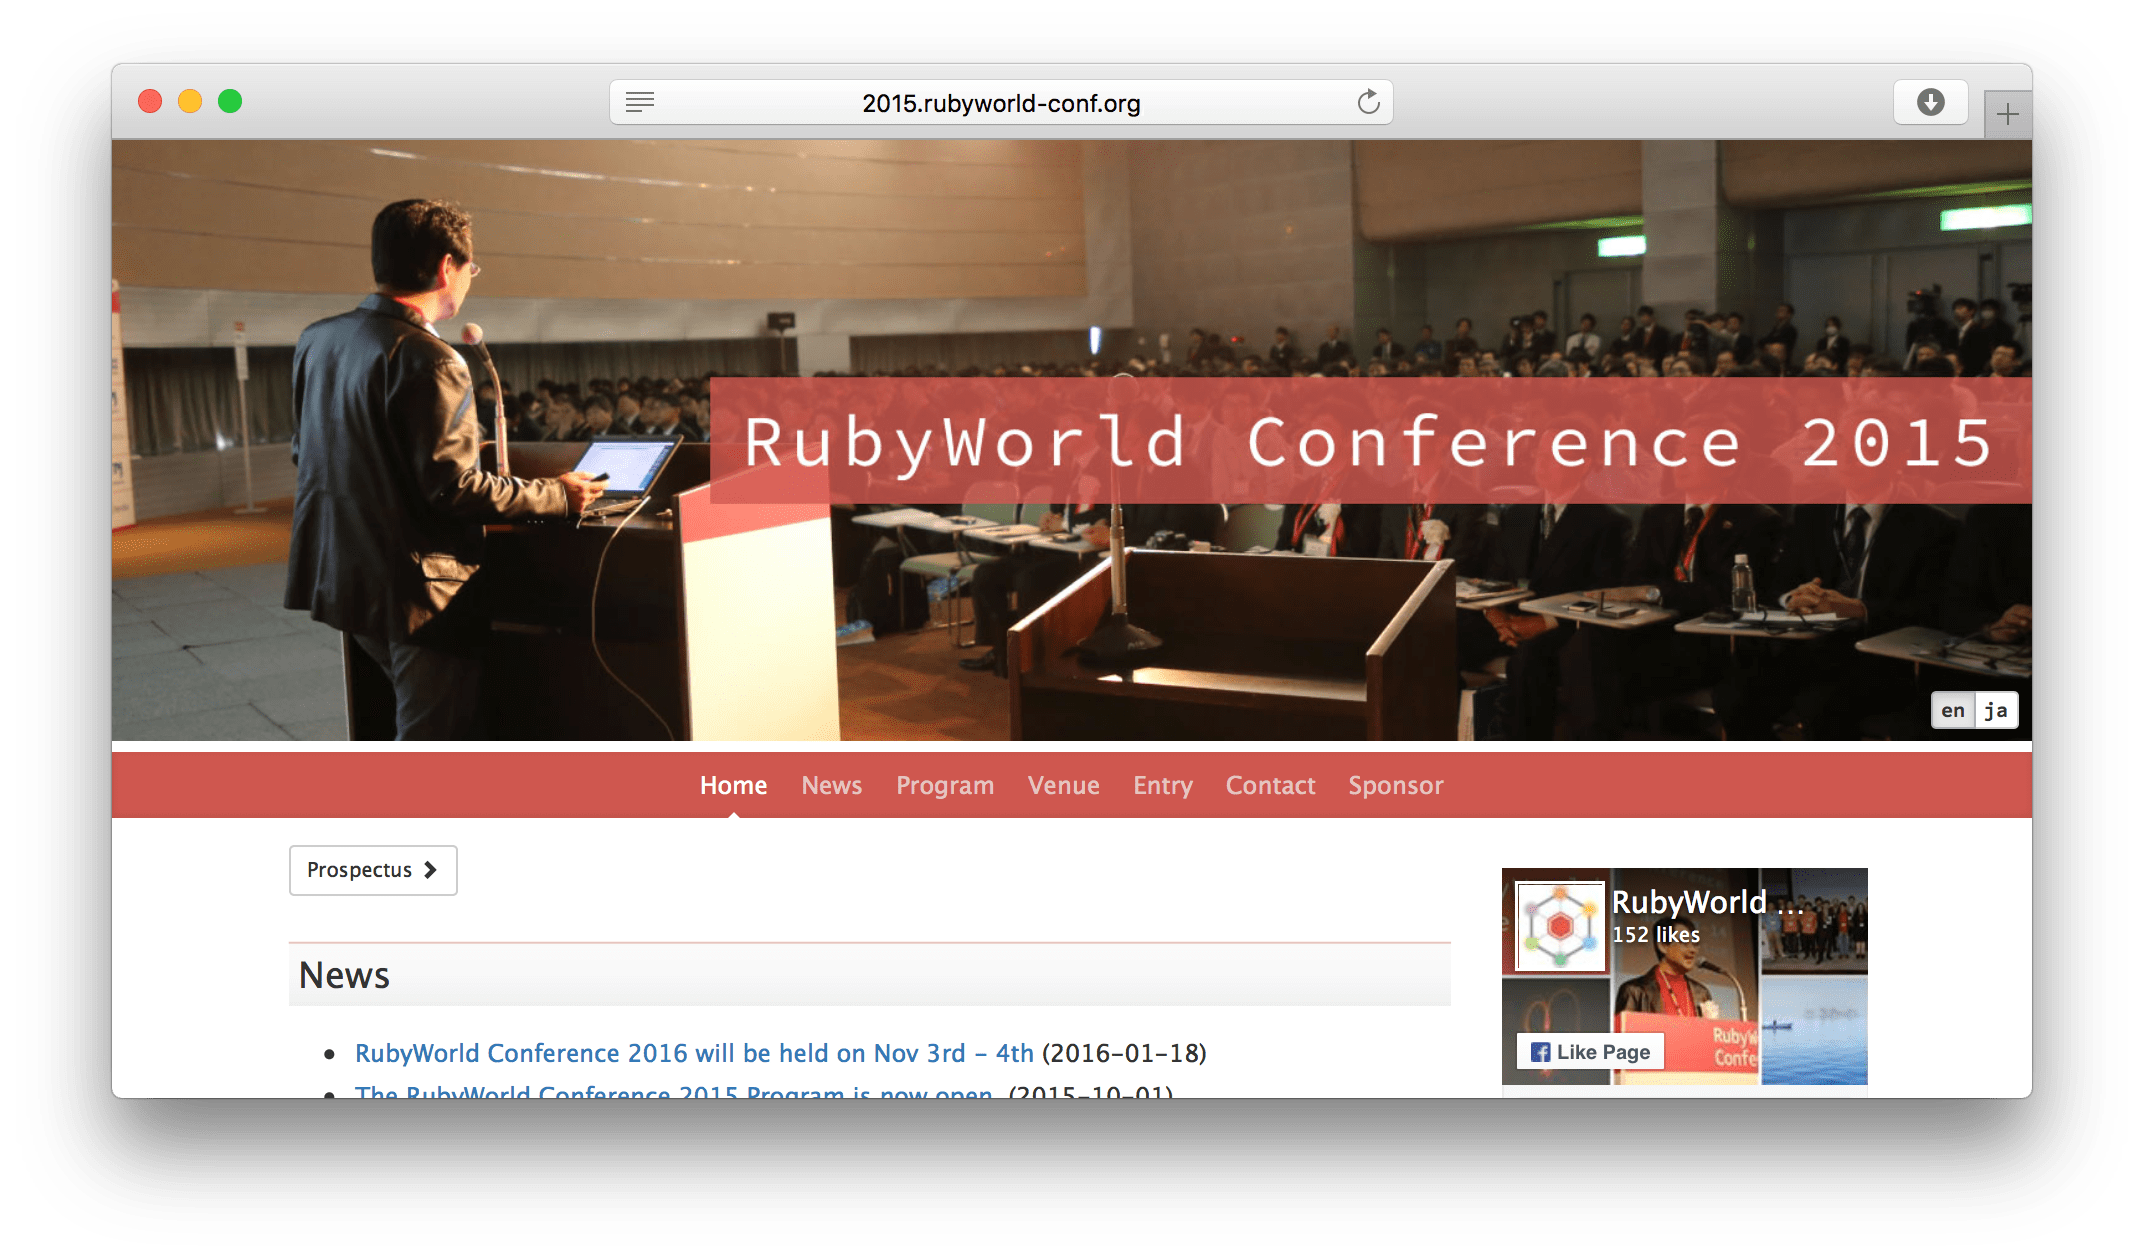 RubyWorld website screenshot